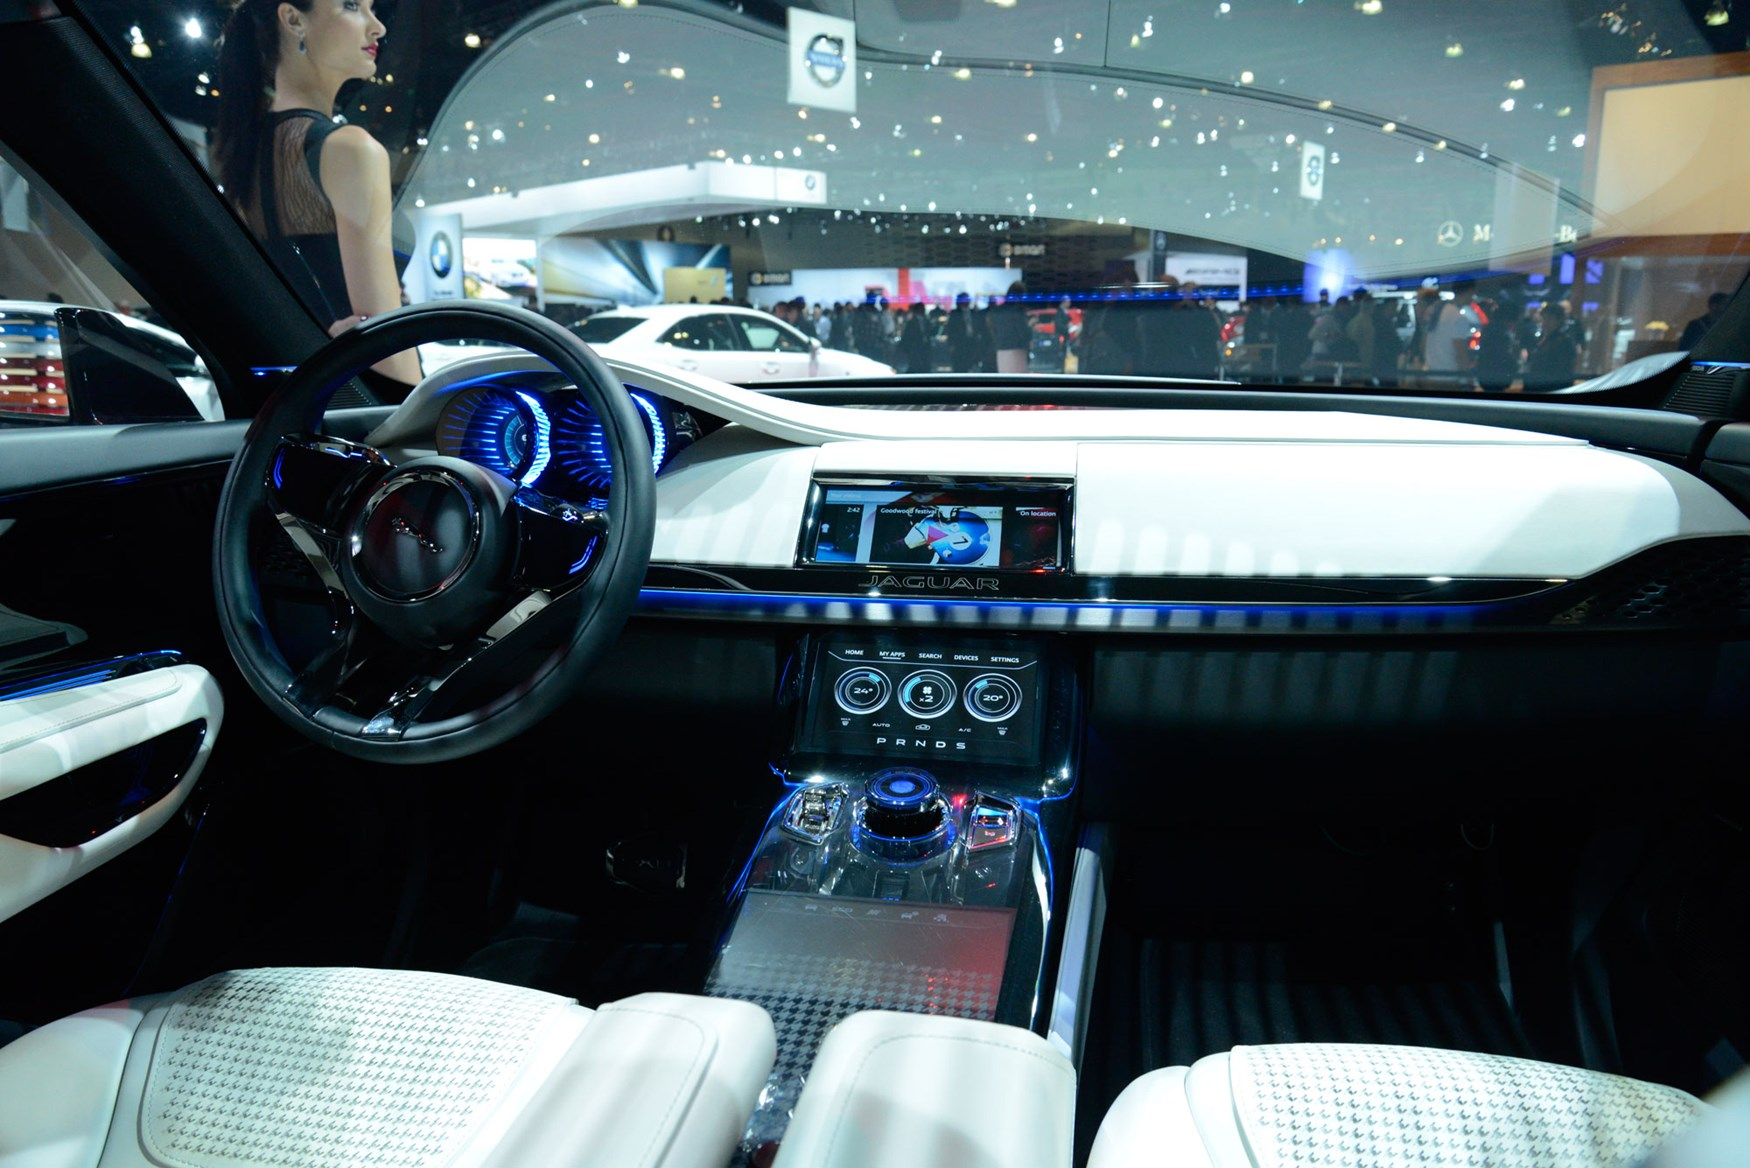 Concept Interior Far More Dramatic But Two Dial Instrument Layout Has Been Retained Probably Without The Striking Lighting Decoration Though Jaguar